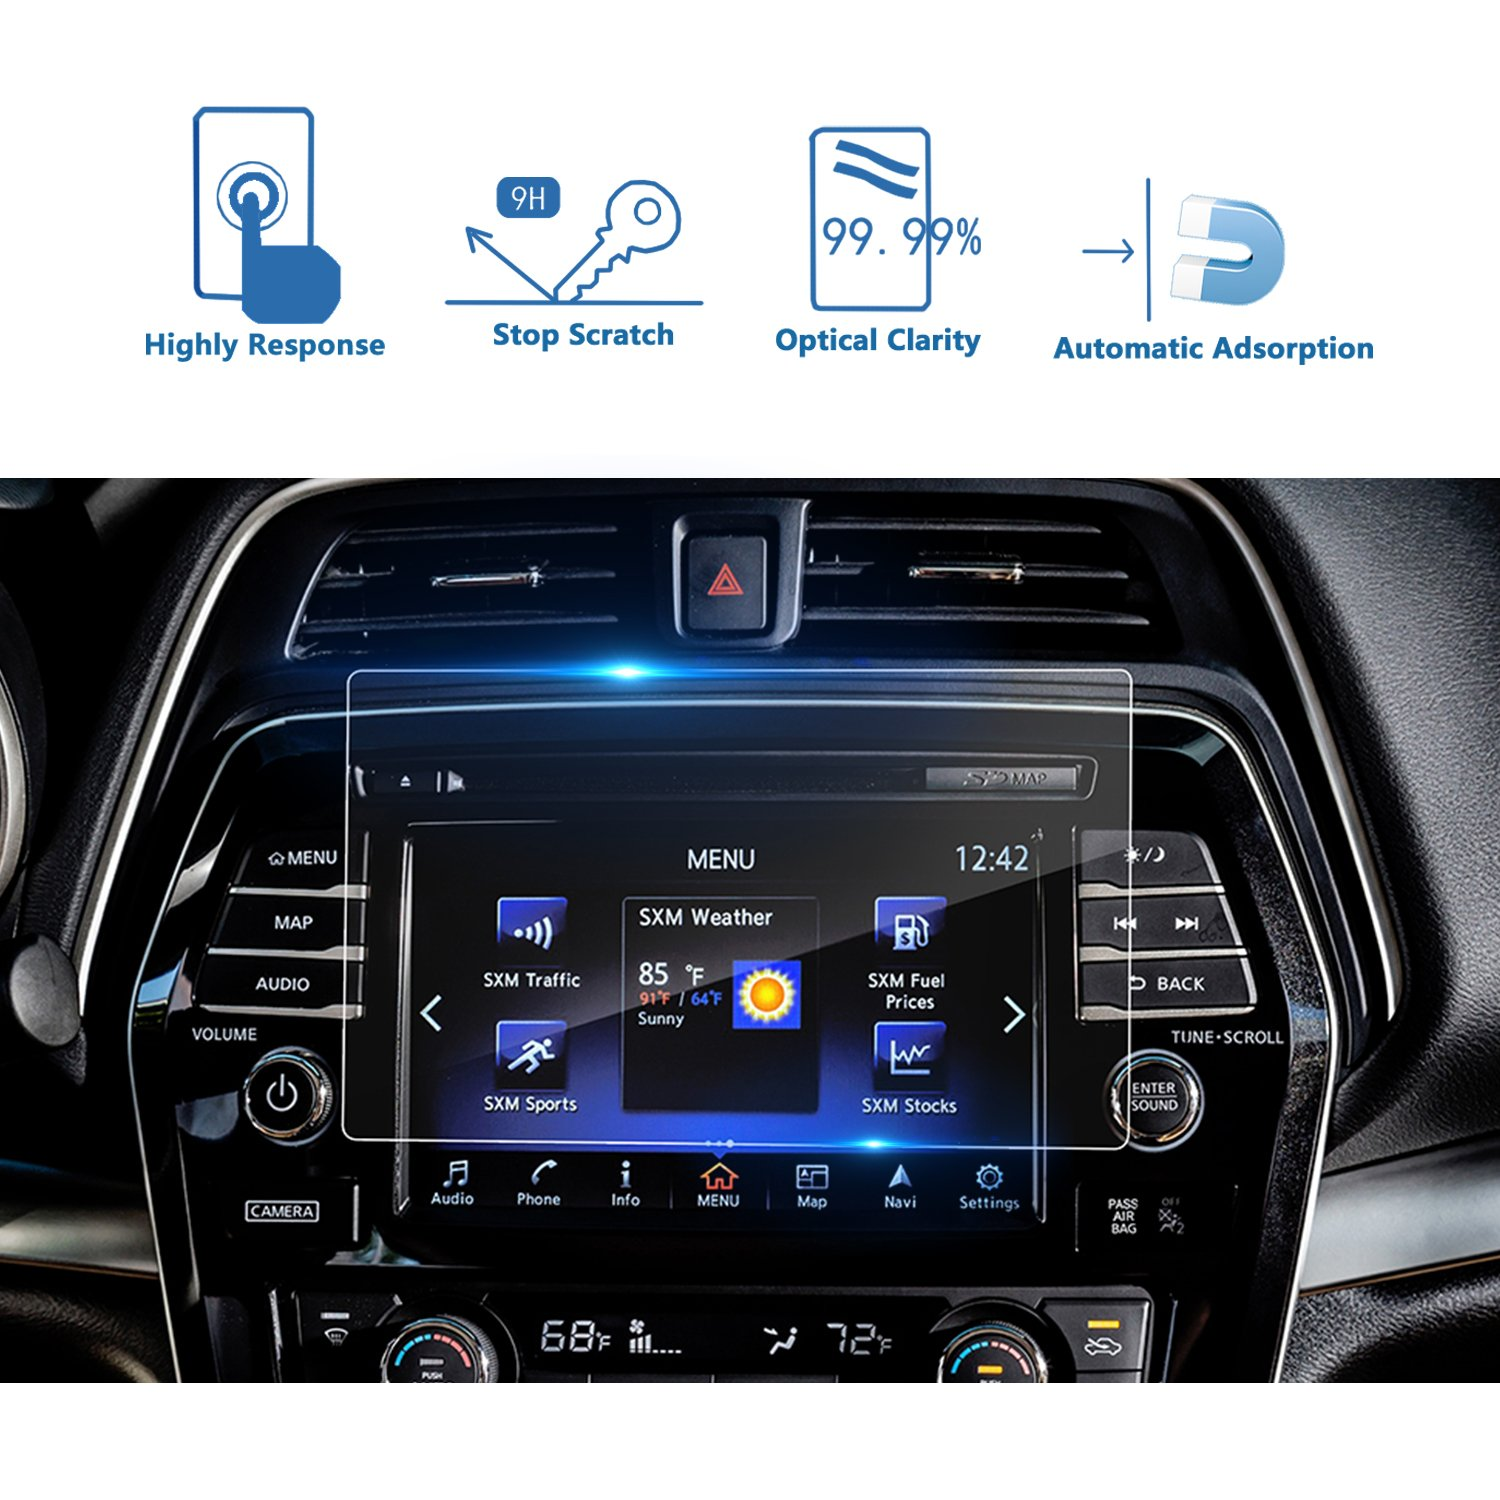 2016 2017 Nissan Maxima Murano 8 Inch Car Navigation Screen Protector, LFOTPP TEMPERED GLASS Infotainment Display In-Dash Media Center Touch Screen Protector Scratch-Resistant LiFan